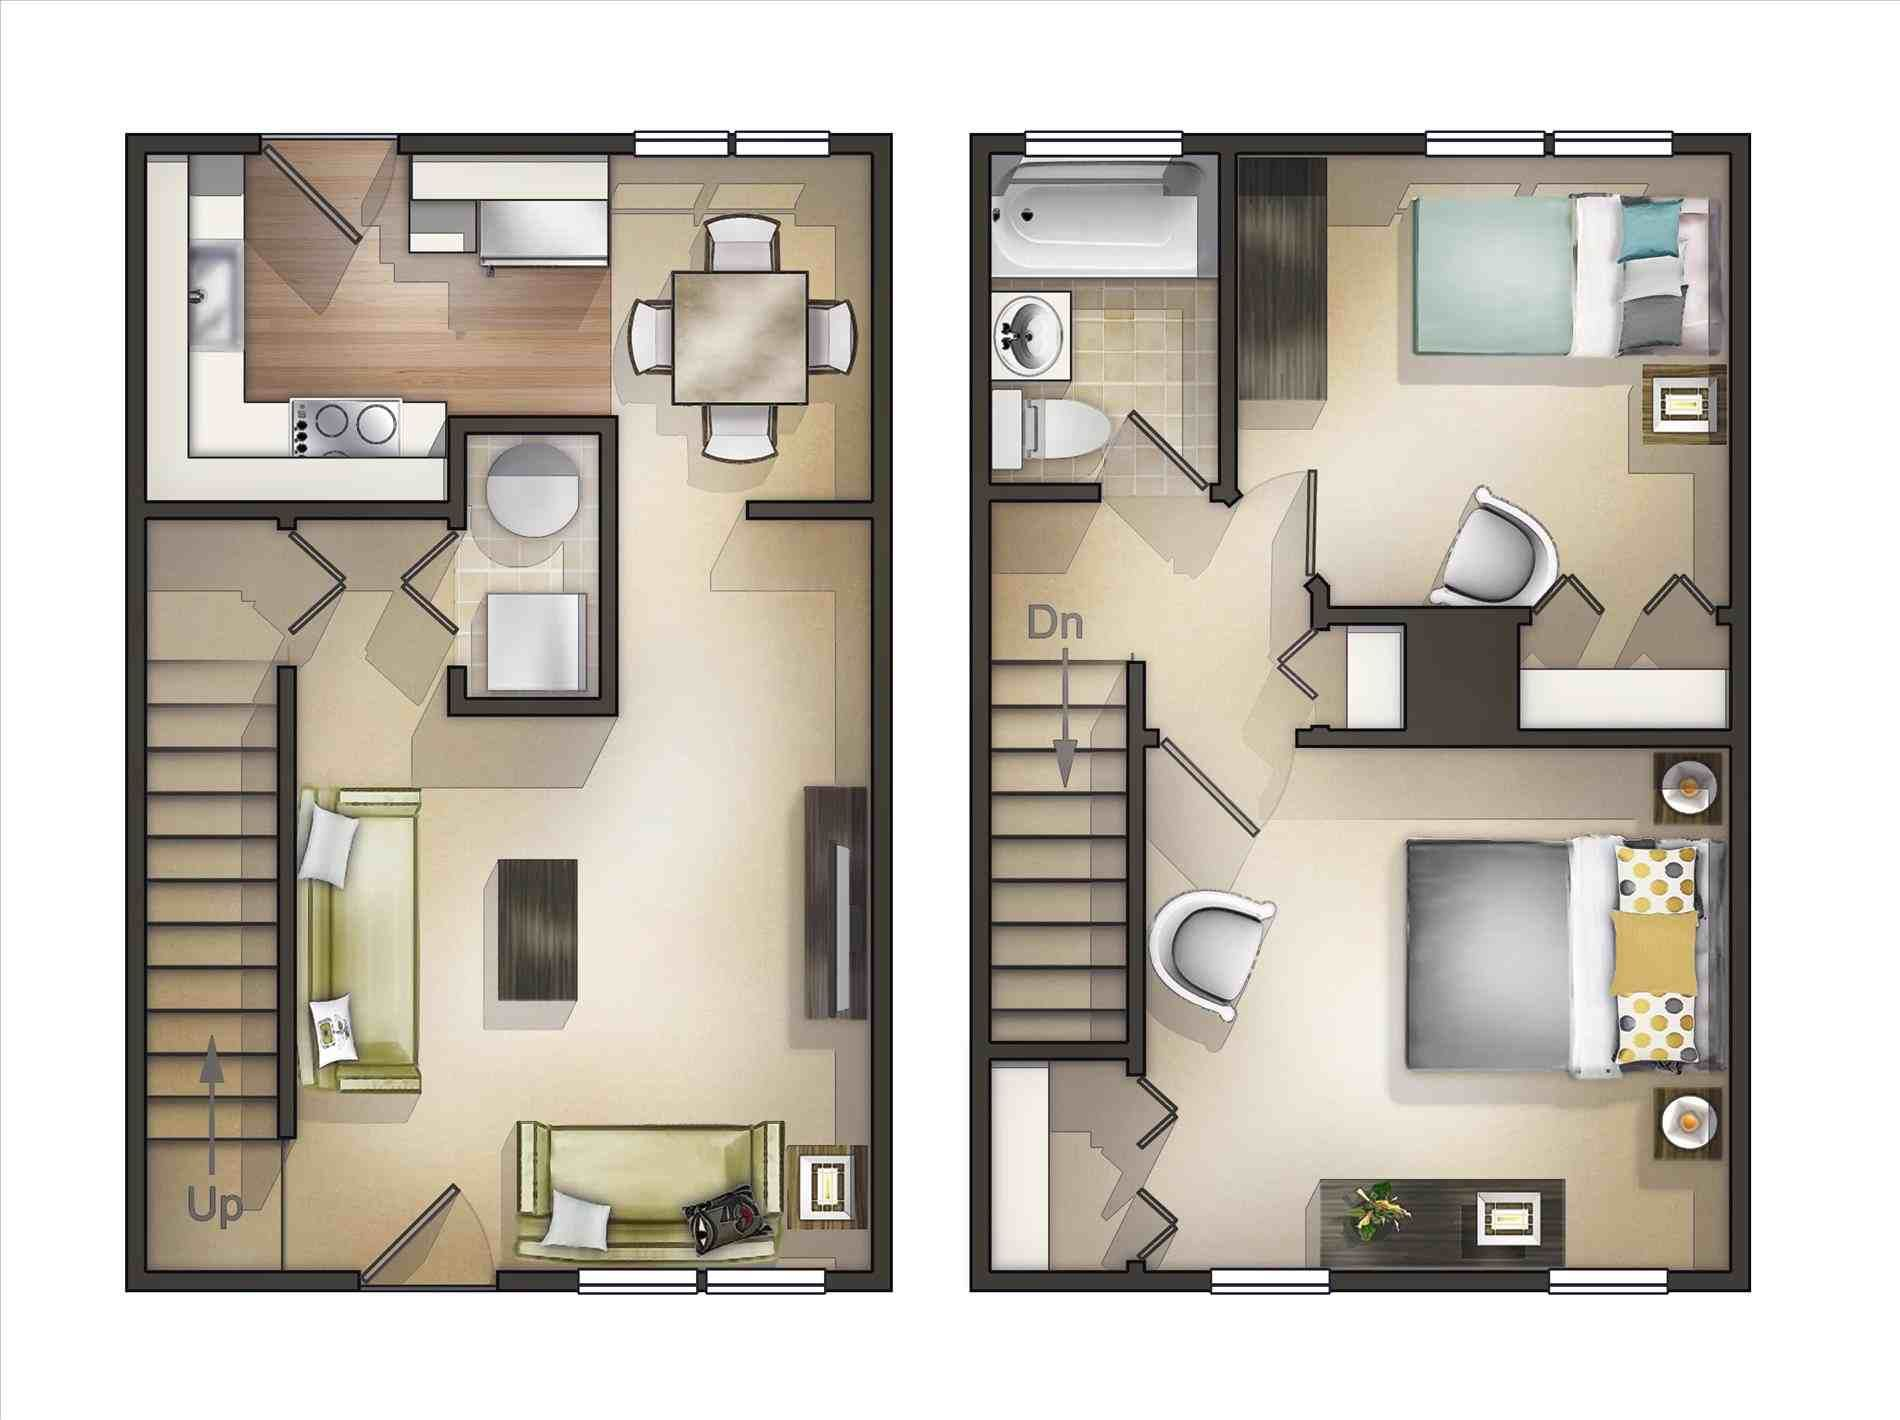 This 2 Bedroom Apartment Nyc Rent Finding A Roommate In Nyc Delightful Decoration 2 Bedroom Section 8 A Finding Apartments One Bedroom House Renting A House